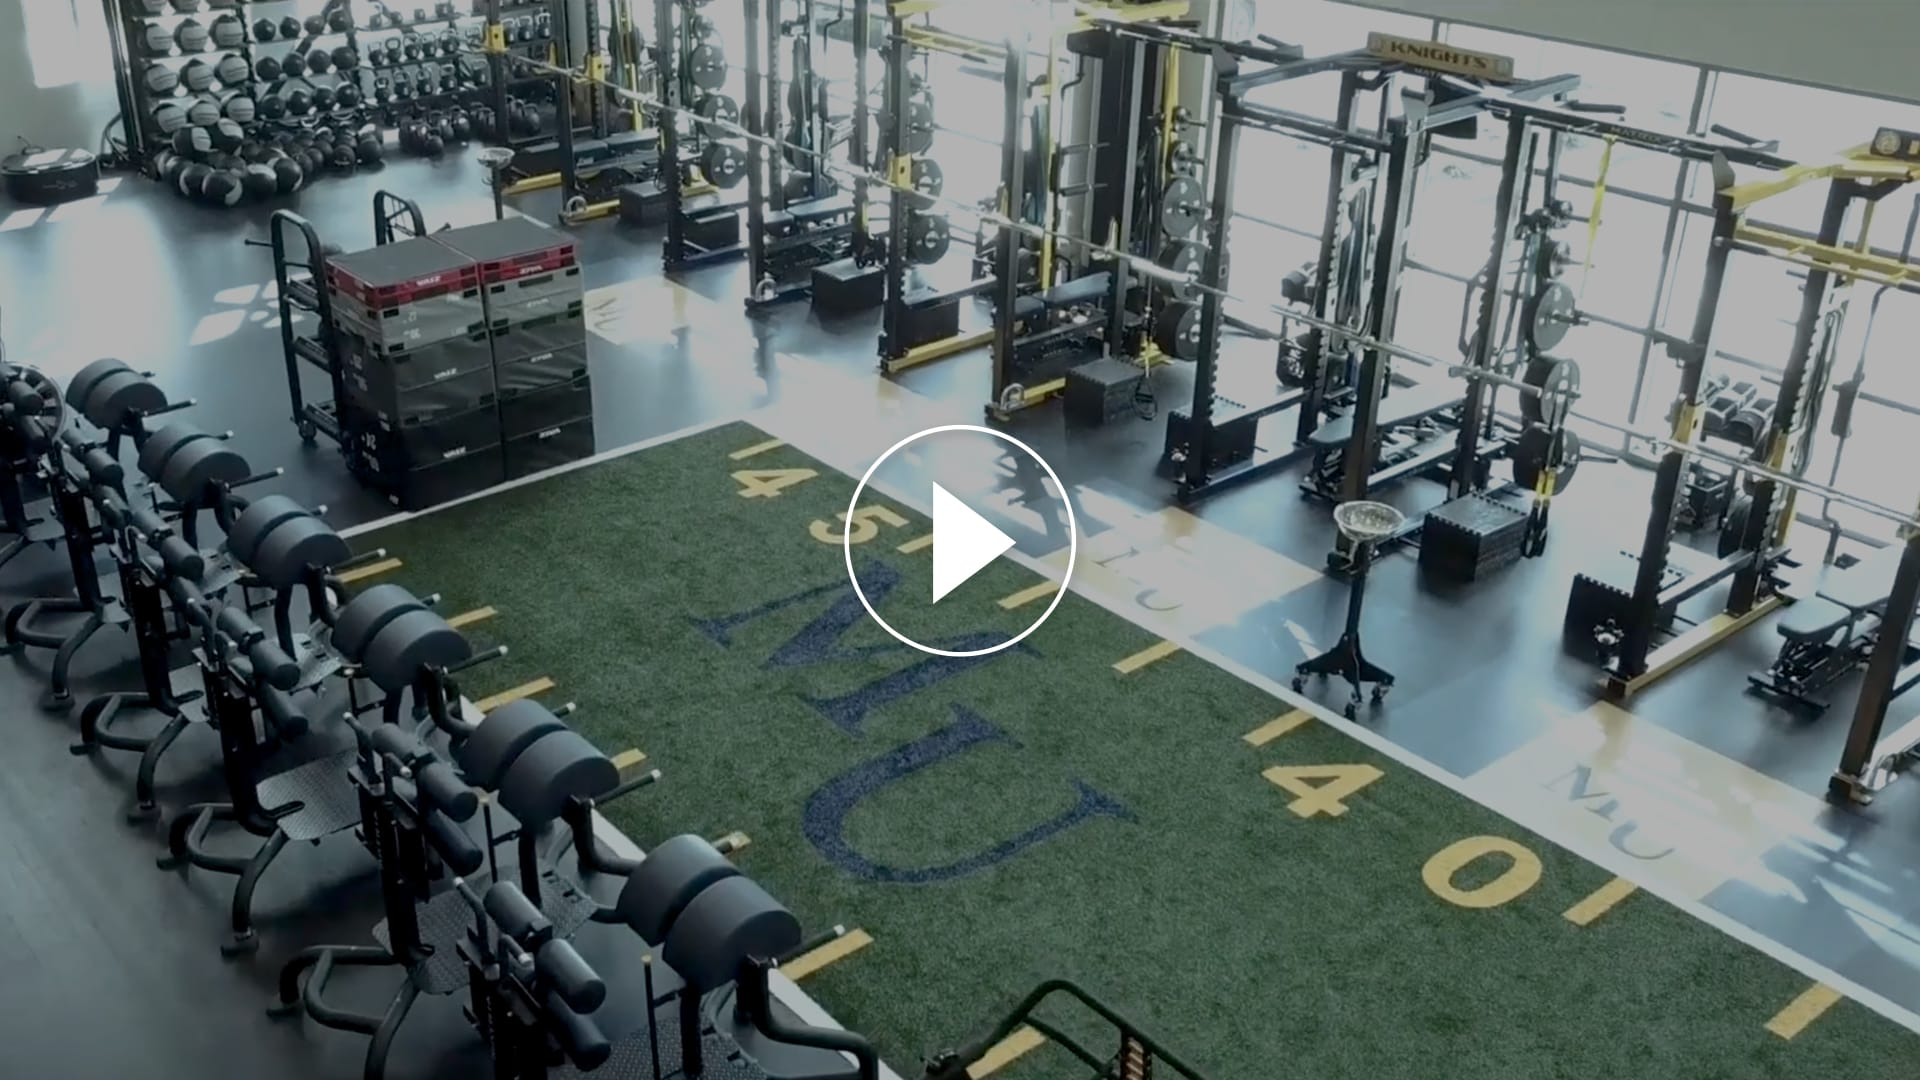 Commercial Fitness & Home Gym Equipment | Matrix Fitness - United